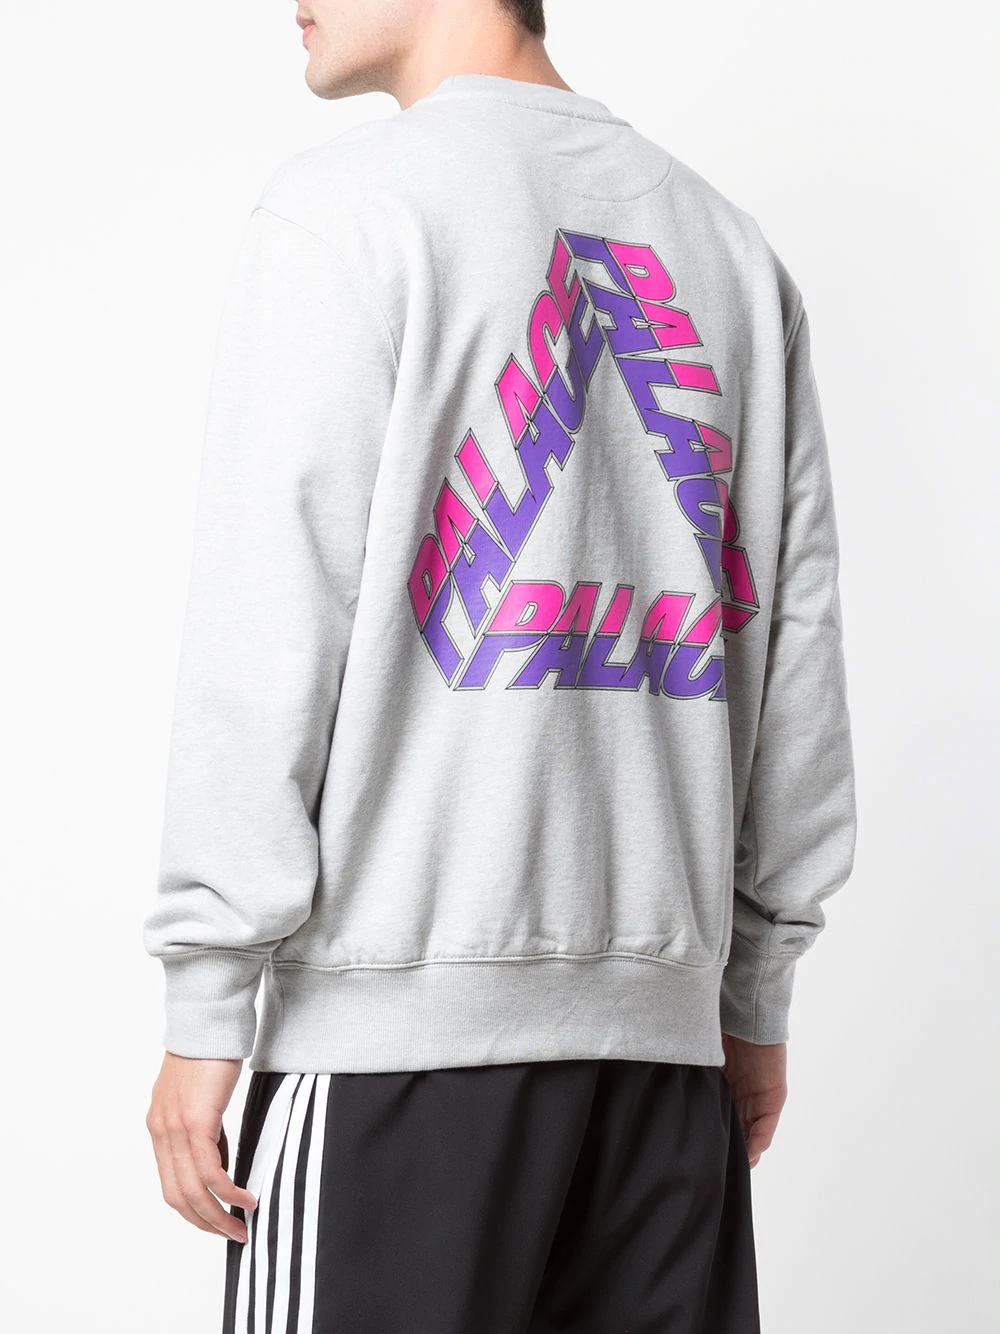 Free Shipping Palace X Adidas Crewneck Tops Tracksuit Tops Streetwear Outfit 90s Sporty Fashion Men [ 1333 x 1000 Pixel ]